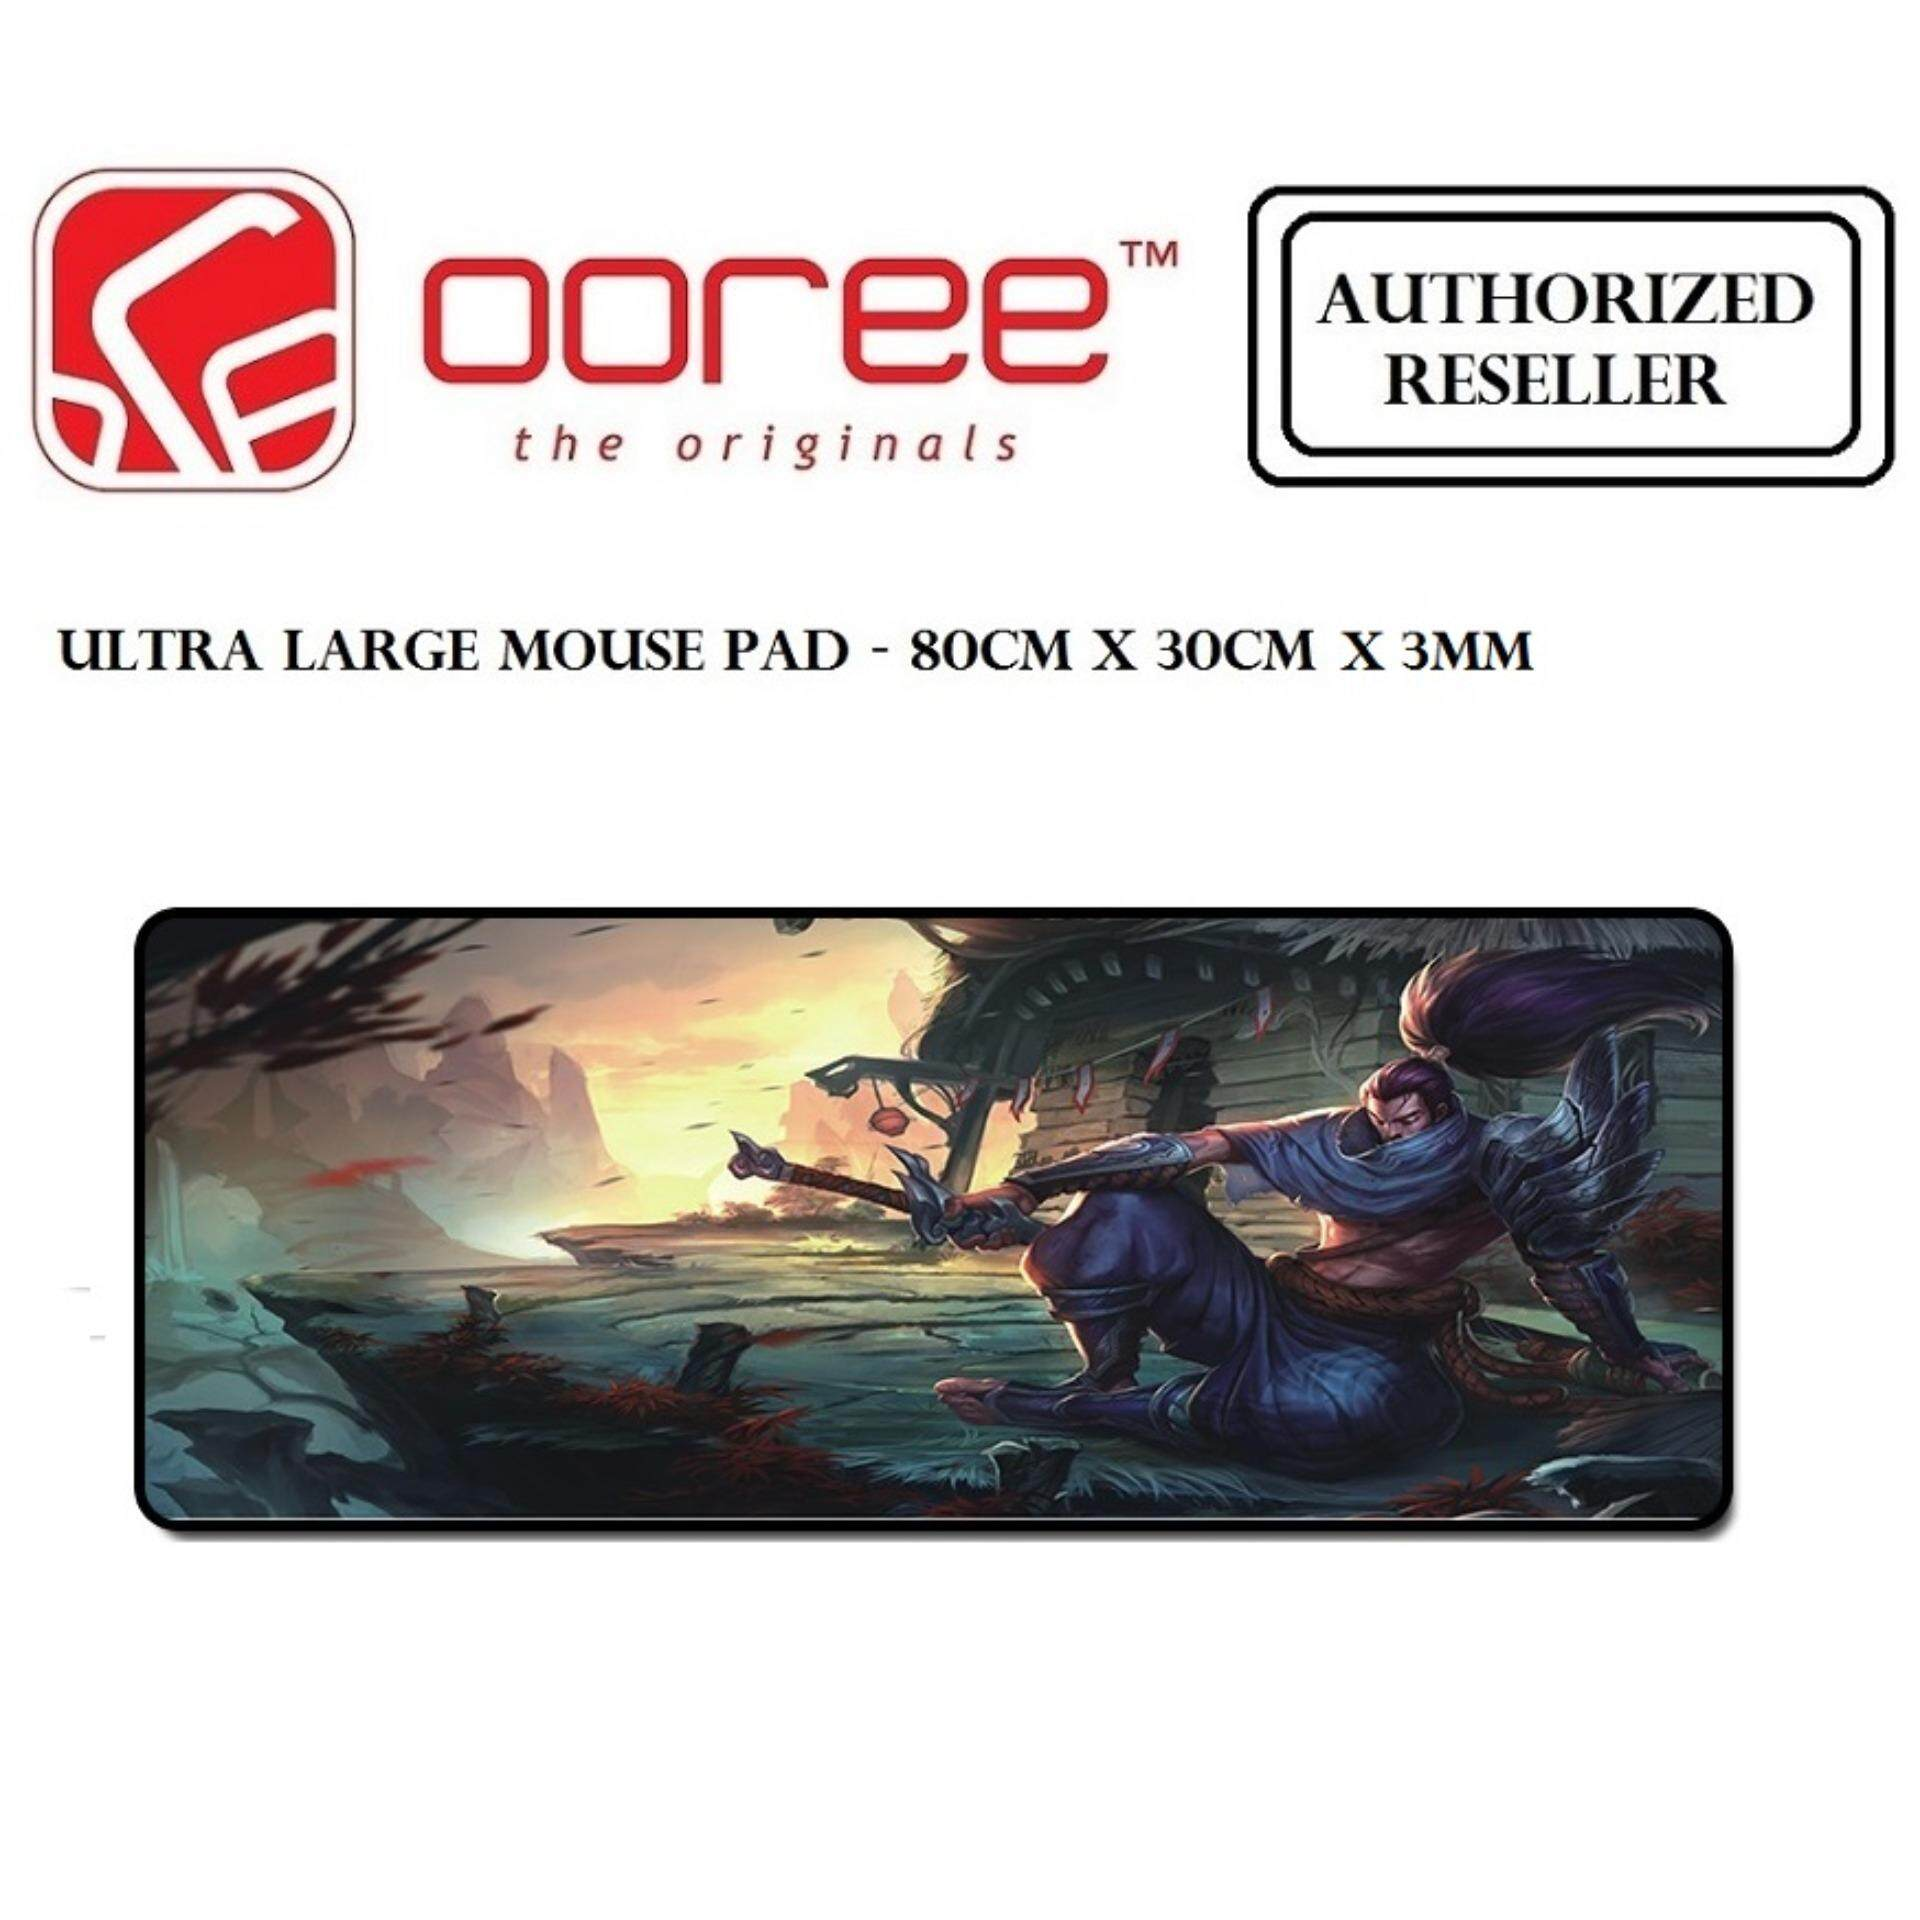 ULTRA LARGE ANTI-FLIP RUBBER SOFT TEXTILE GAMING MOUSE PAD - 80CM X 30CM Malaysia